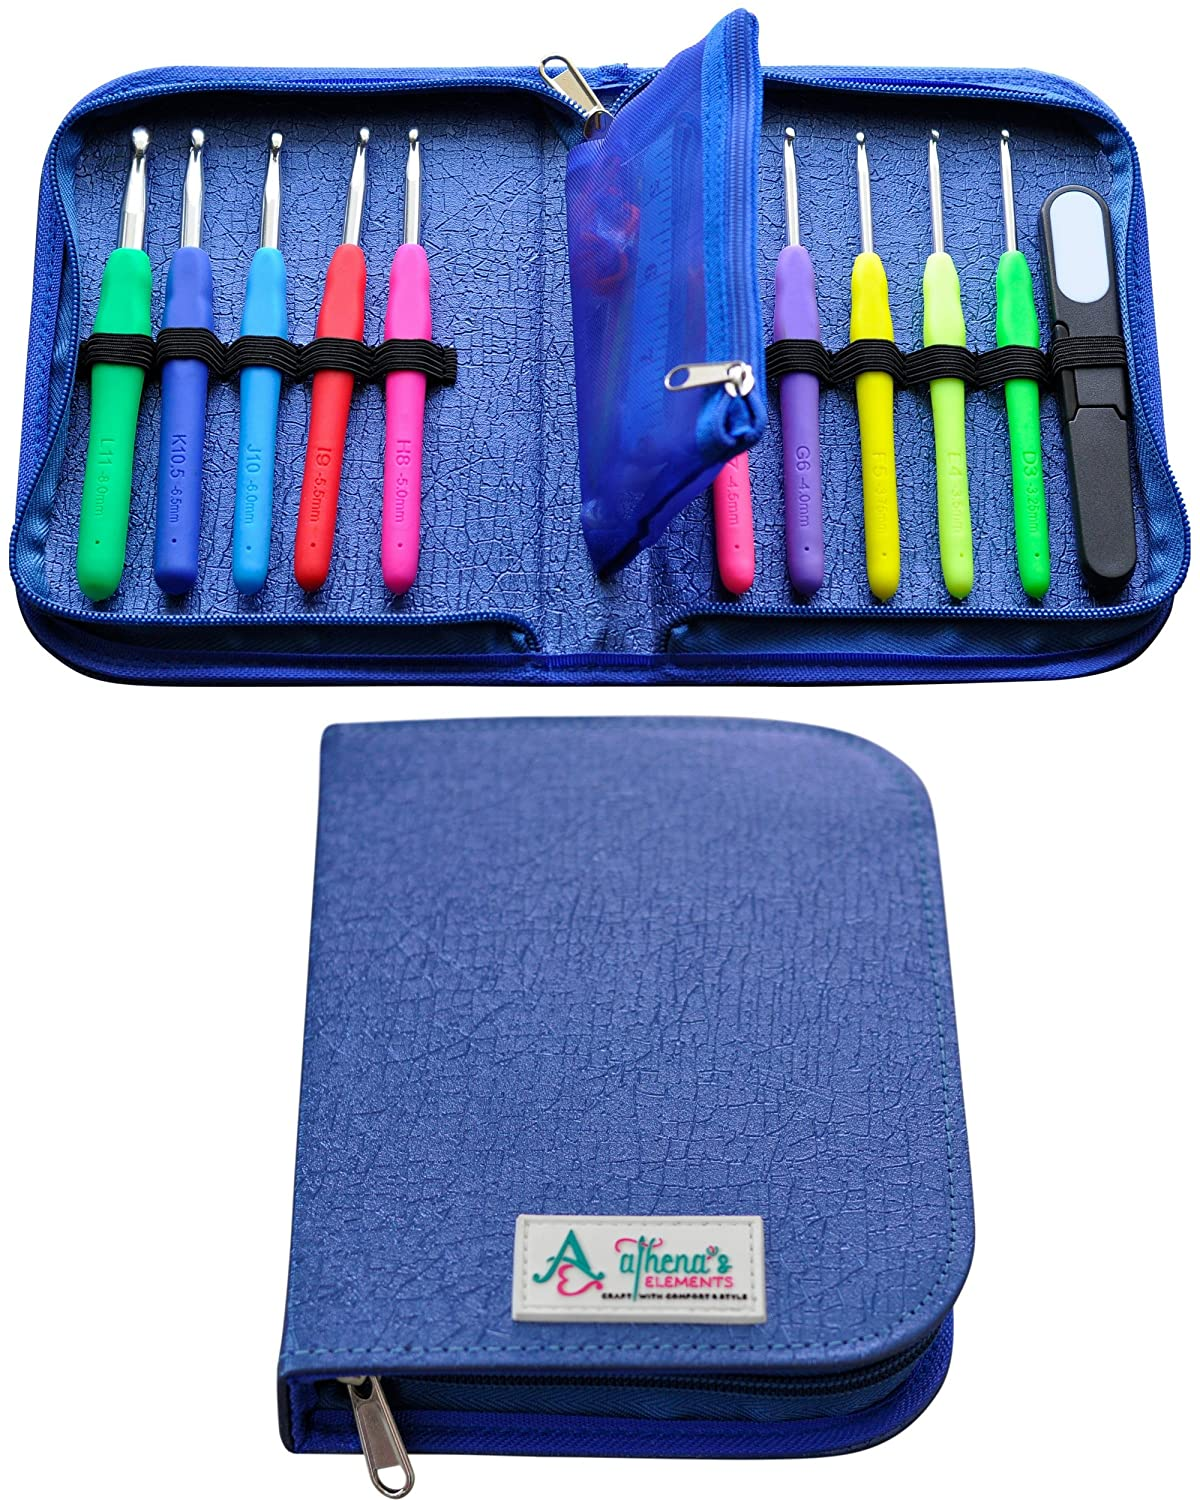 PREMIUM CROCHET HOOKS KIT & CASE With Removable Pocket - Ergonomic Soft Grip Handles For Extreme Comfort - 32 Crocheting Accessories & 10 USA Standard Hook Sizes Letters & Metric Prints D3.25mm ~ L8mm Athena's Elements 4336923036